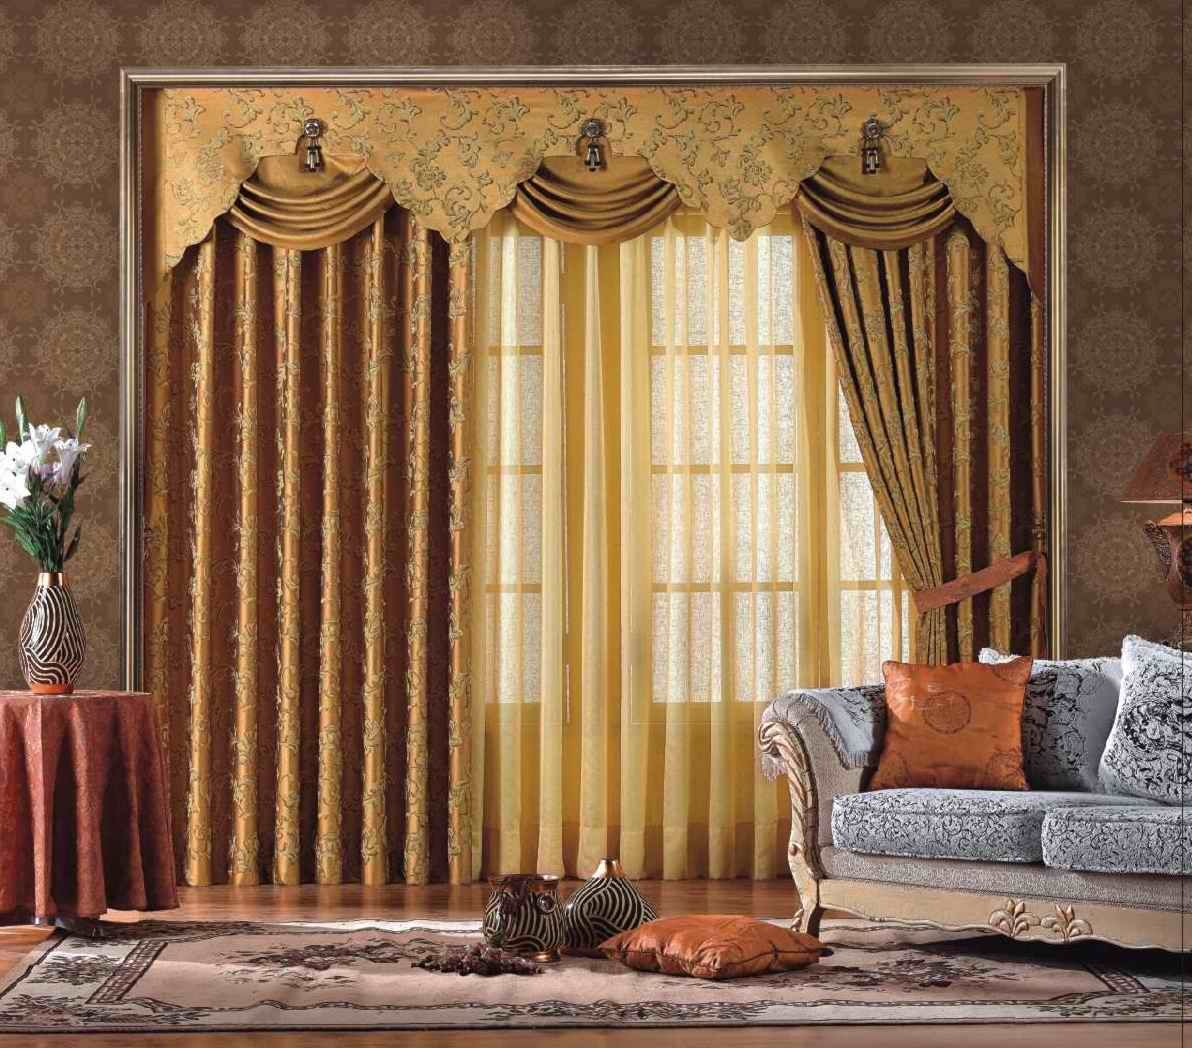 Living Room Curtain Design Entrancing Architecture  Living Room Curtains With Valance Sutntljr Gorgeous Decorating Design